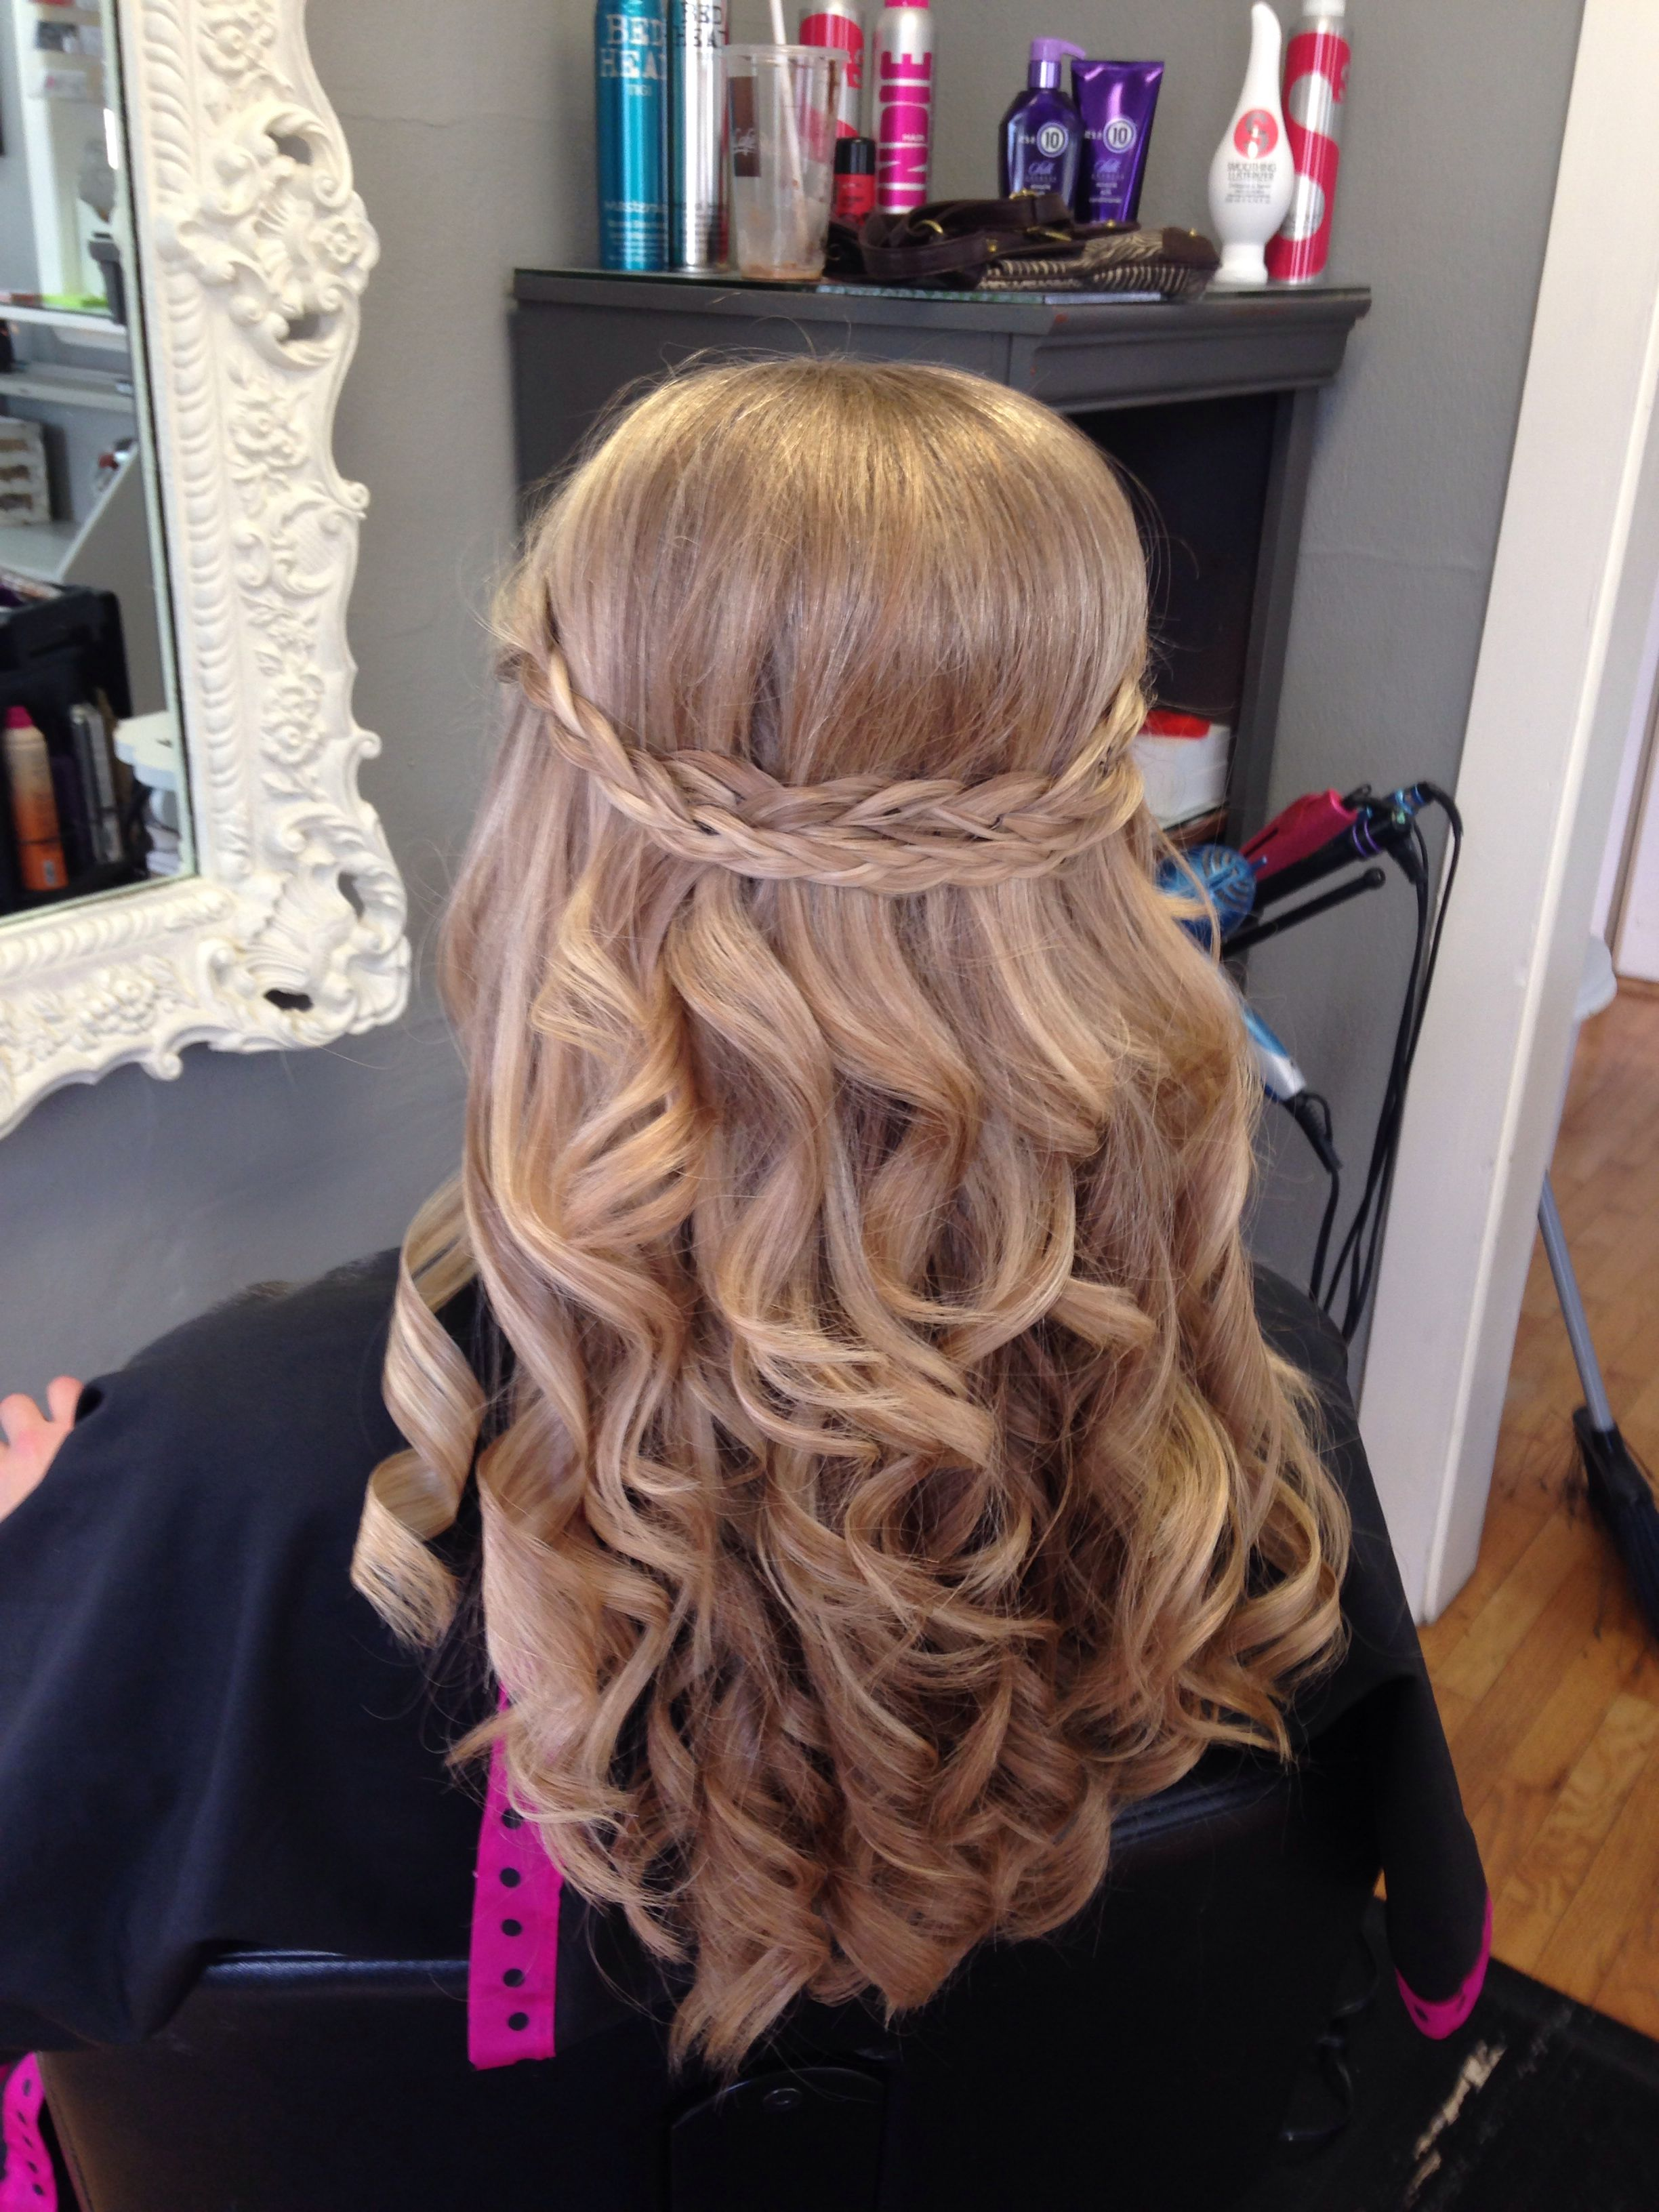 Hair style for prom done by bri turpin turpin riesterer